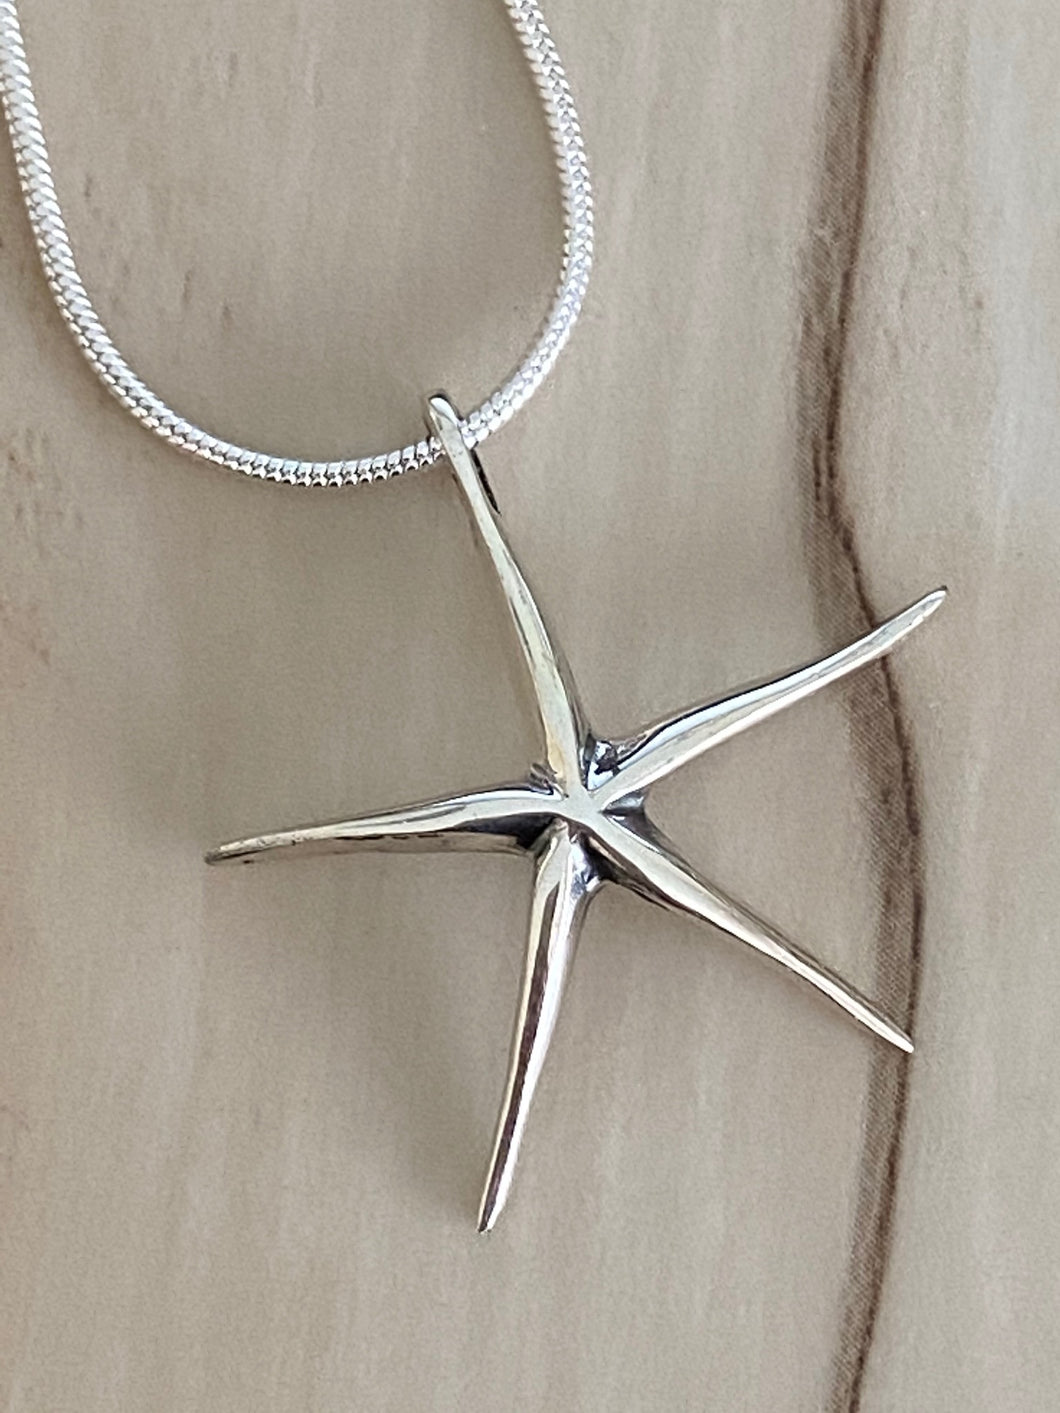 Starfish Pendant 925 Sterling Silver Jewelry. Free Silver Plated Chain. Free Shipping!